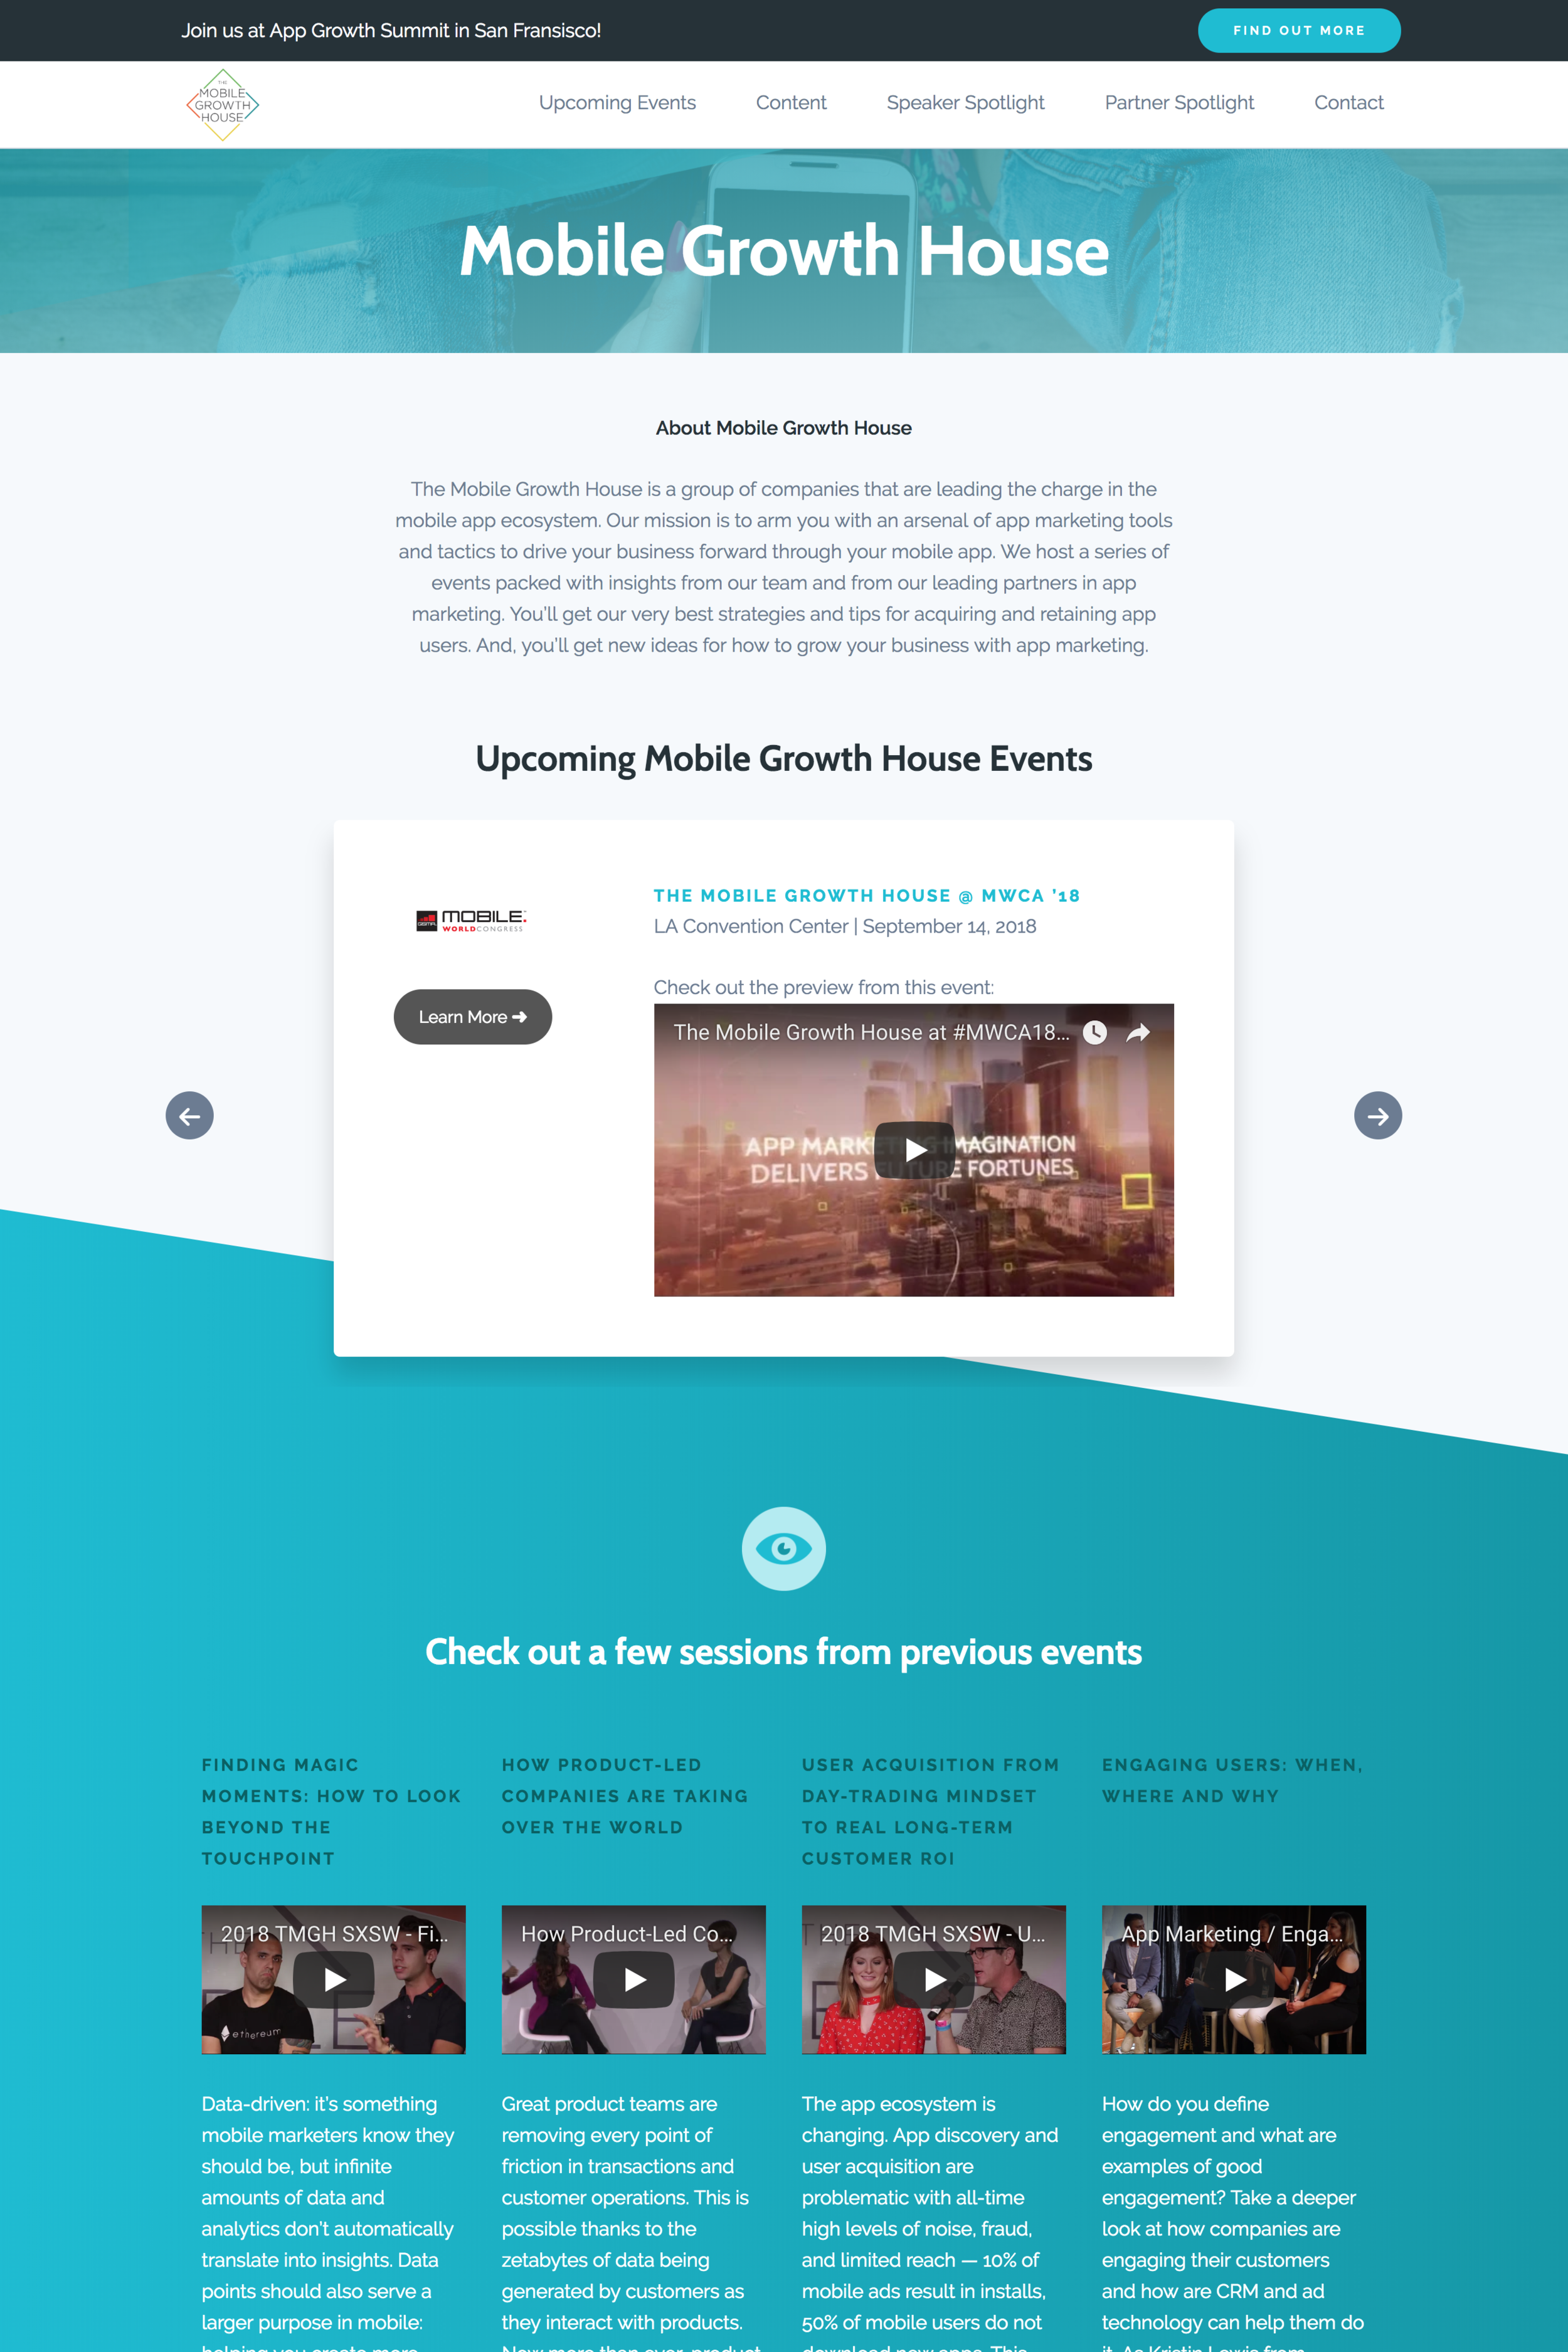 The Mobile Growth House Website